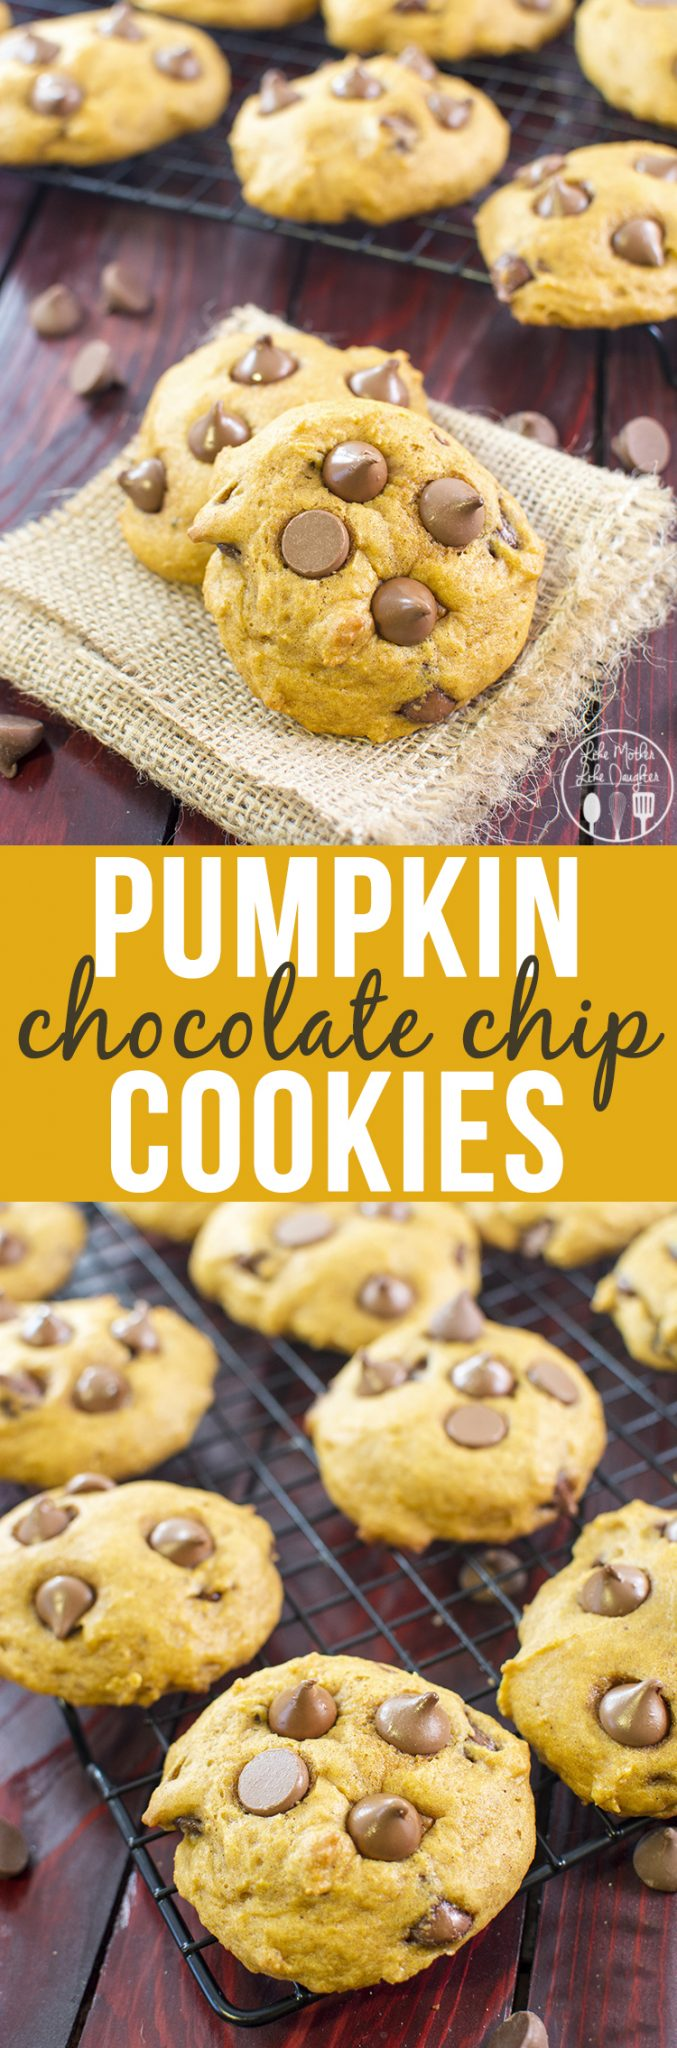 Pumpkin Chocolate Chip Cookies - These are the perfect soft baked fall cookies full of pumpkiny goodness and stuffed full of chocolate chips.